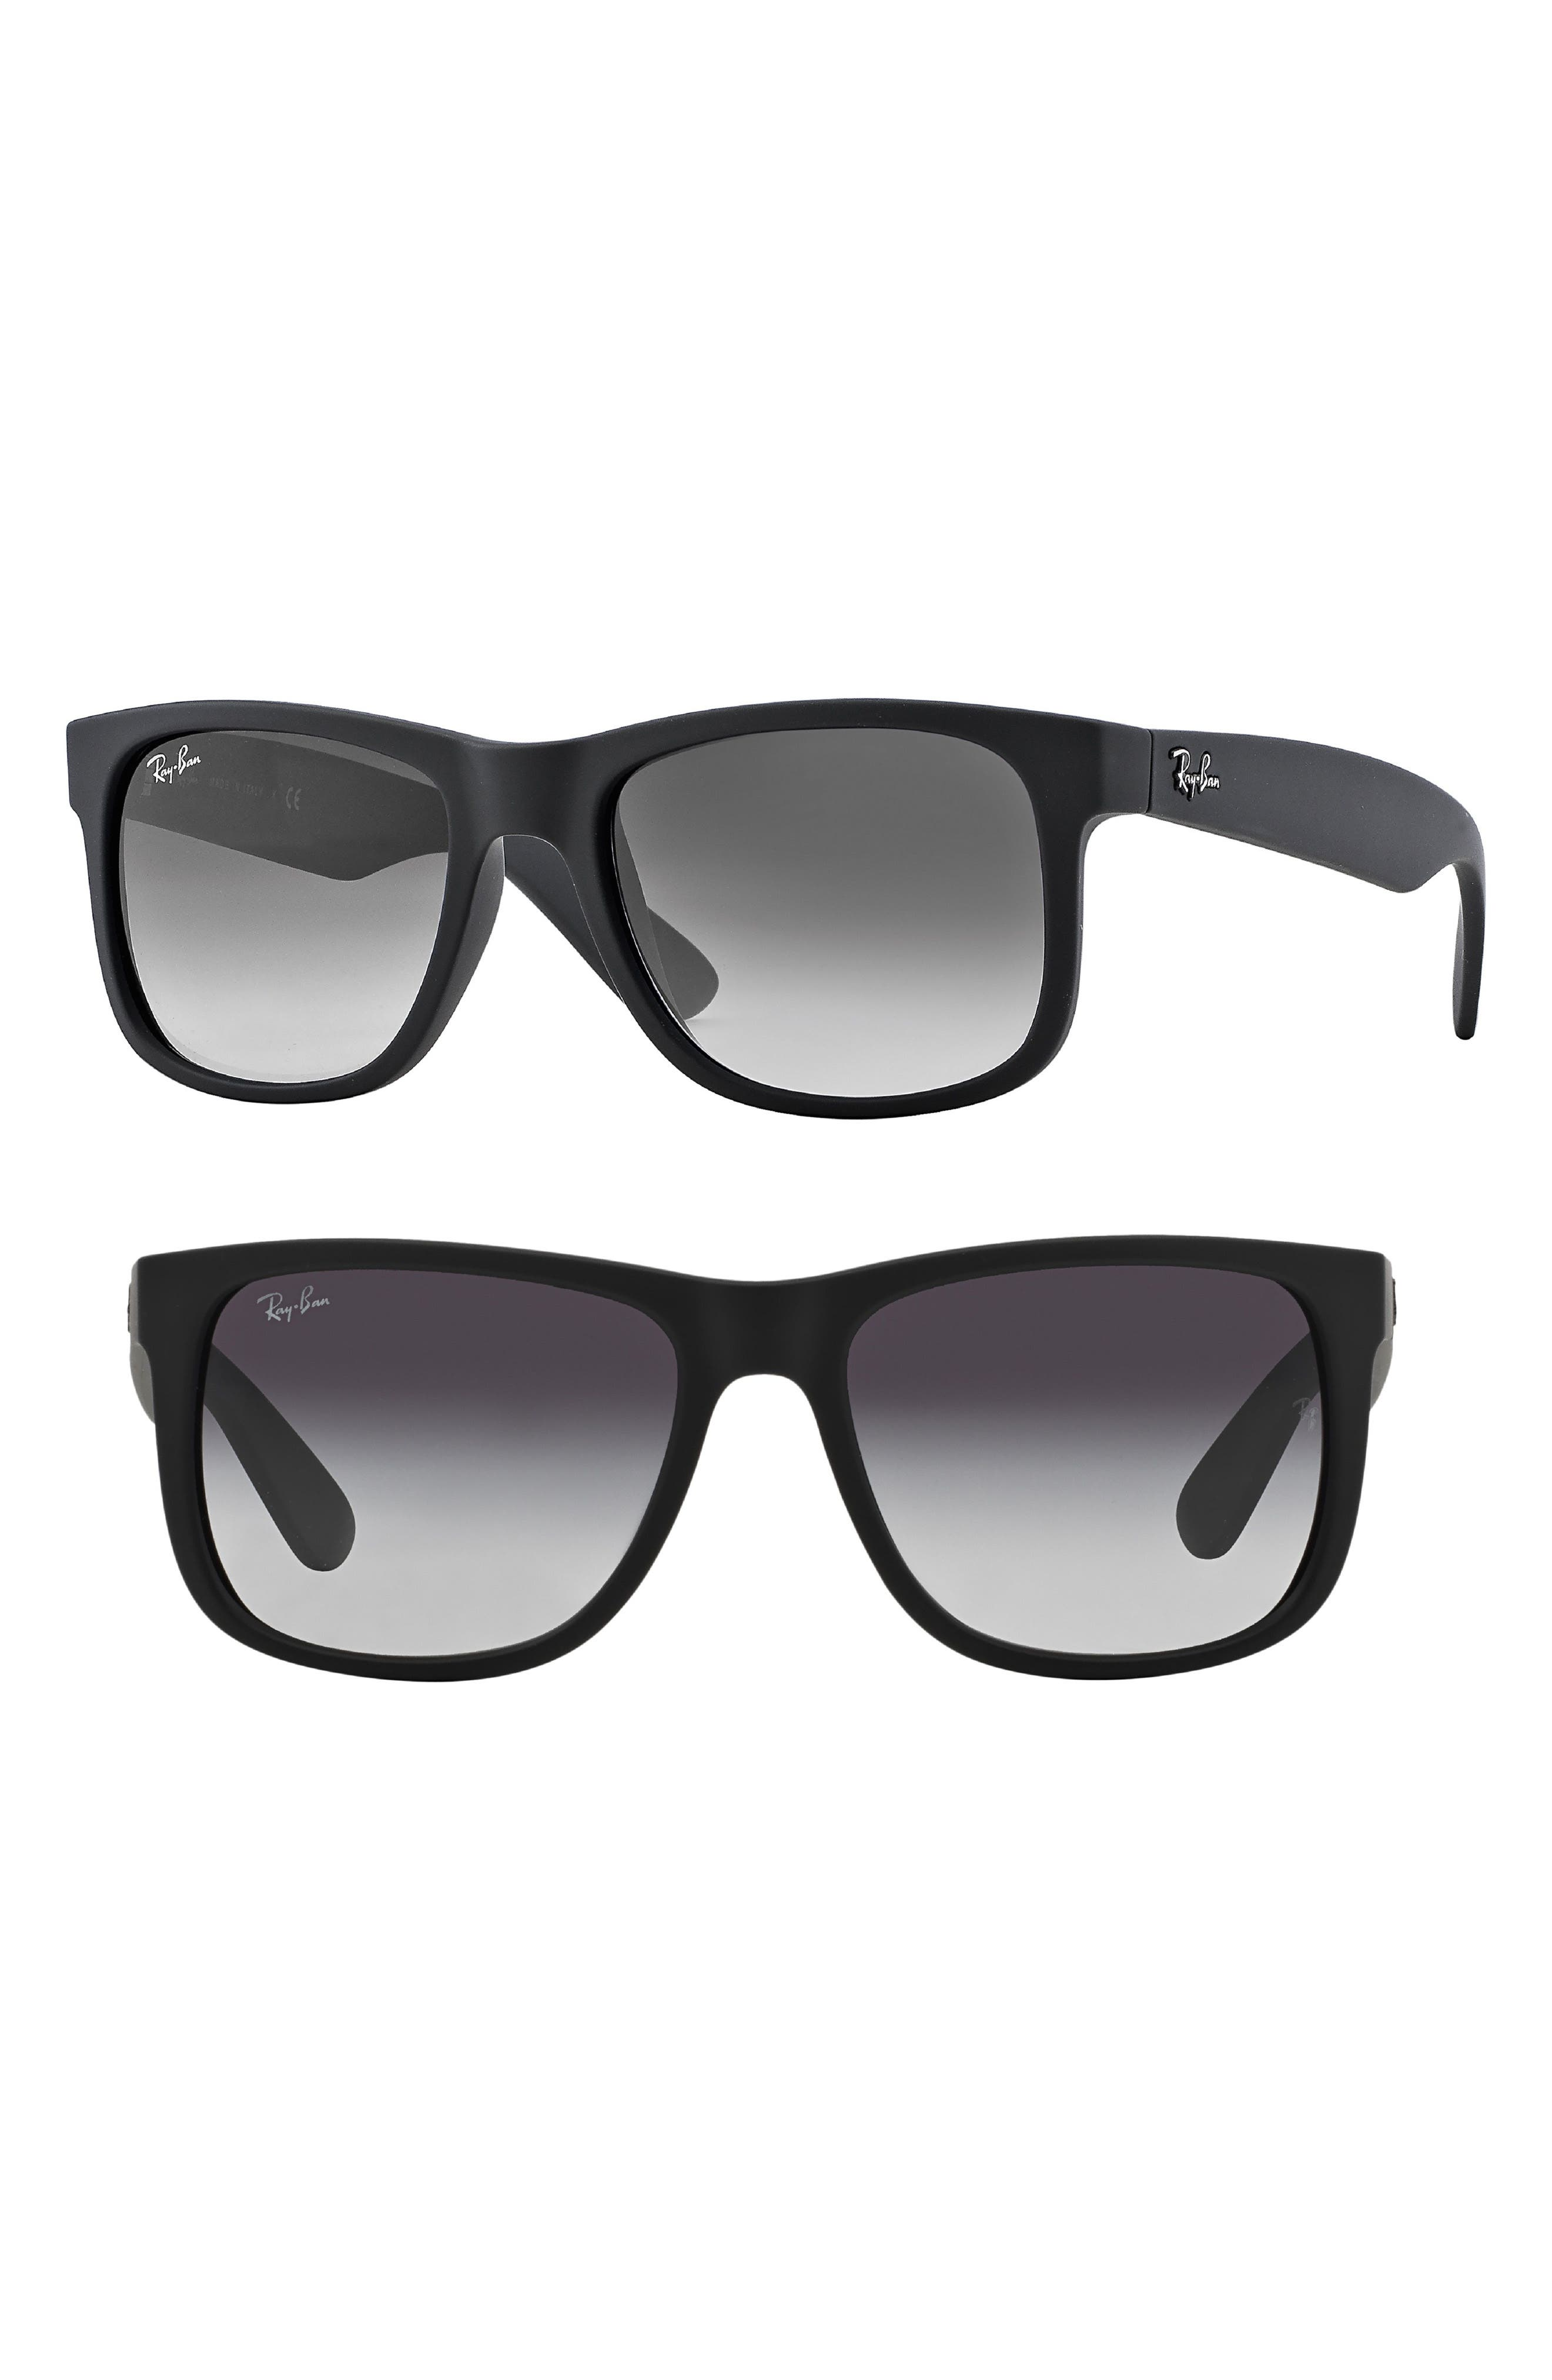 Youngster 54mm Sunglasses,                             Main thumbnail 1, color,                             BLACK